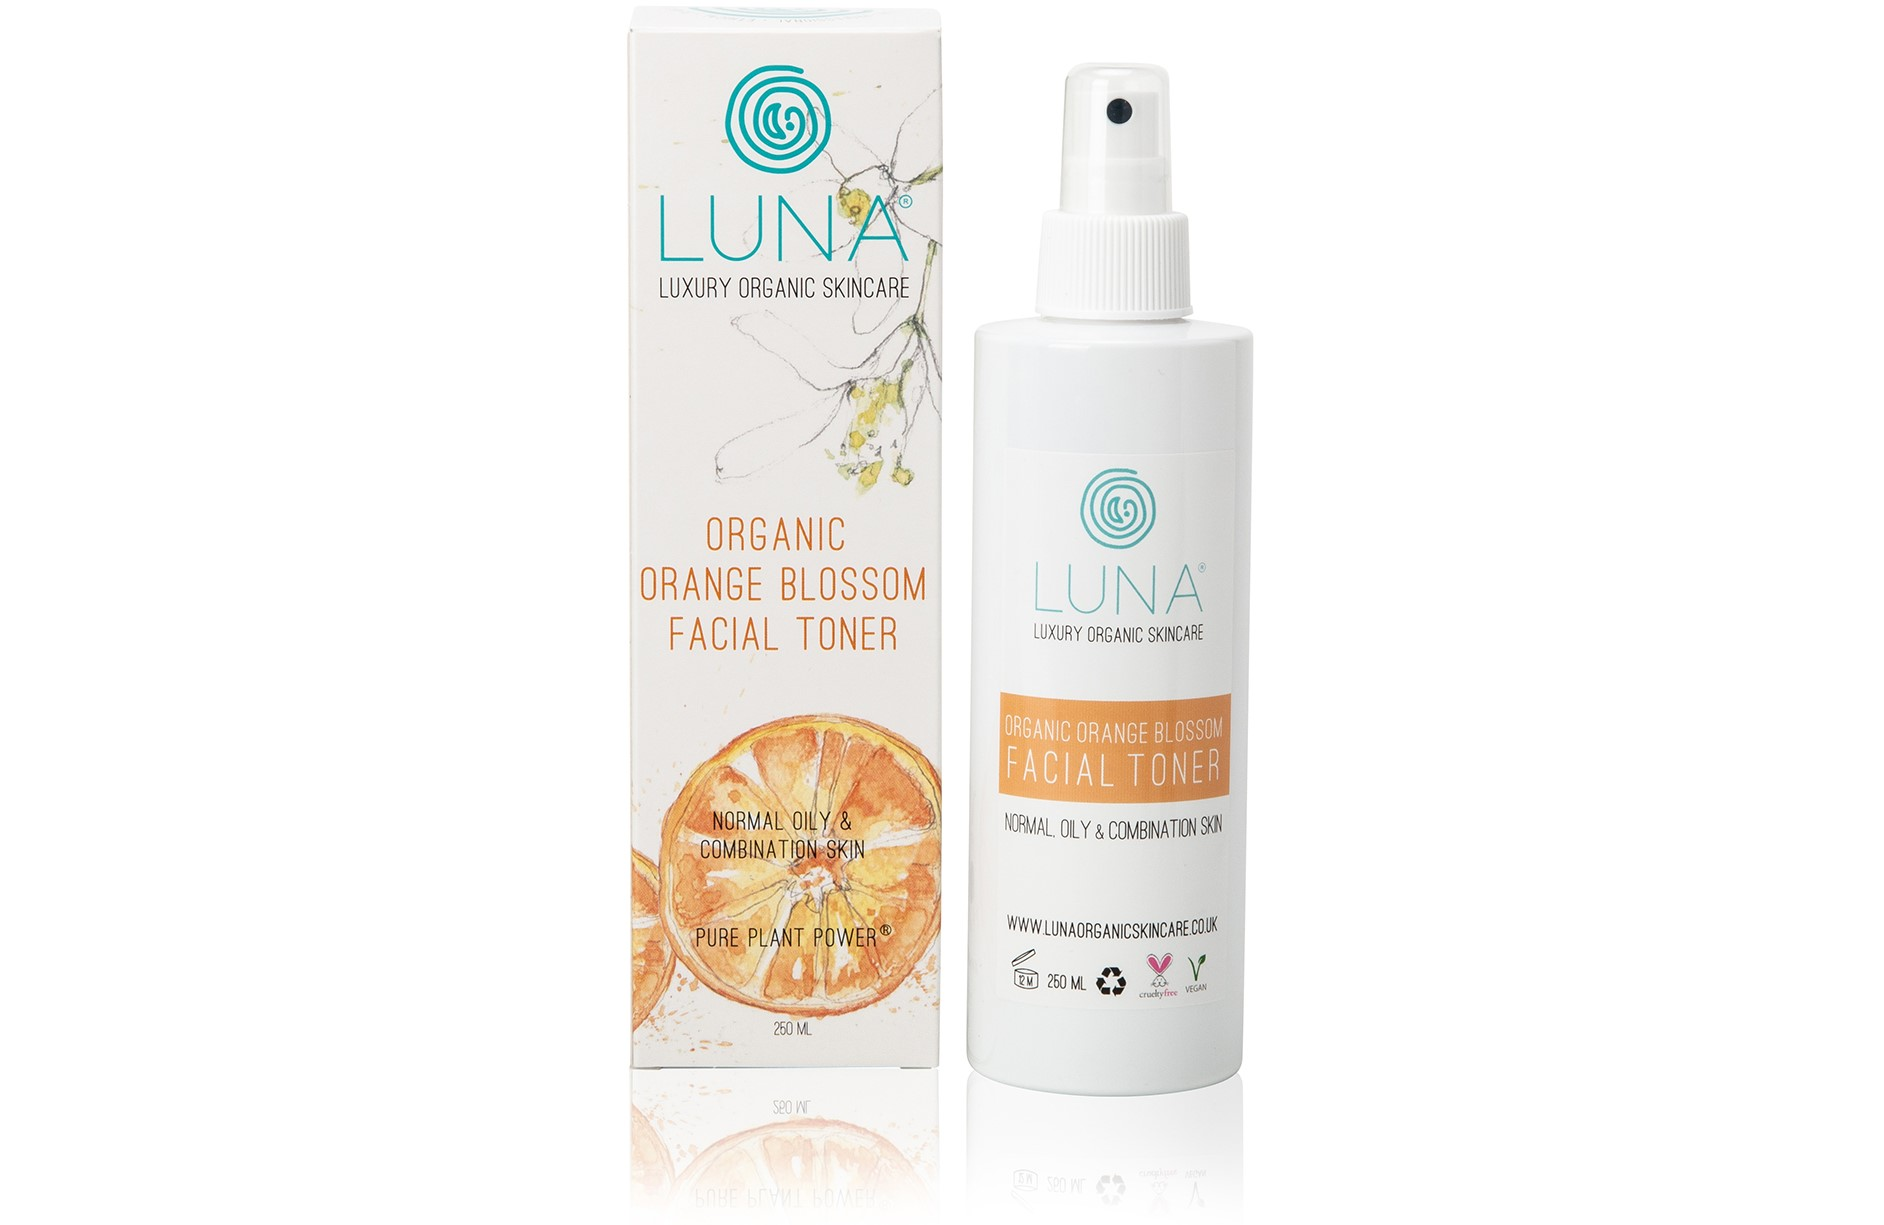 Organic Orange Blossom Facial Toner